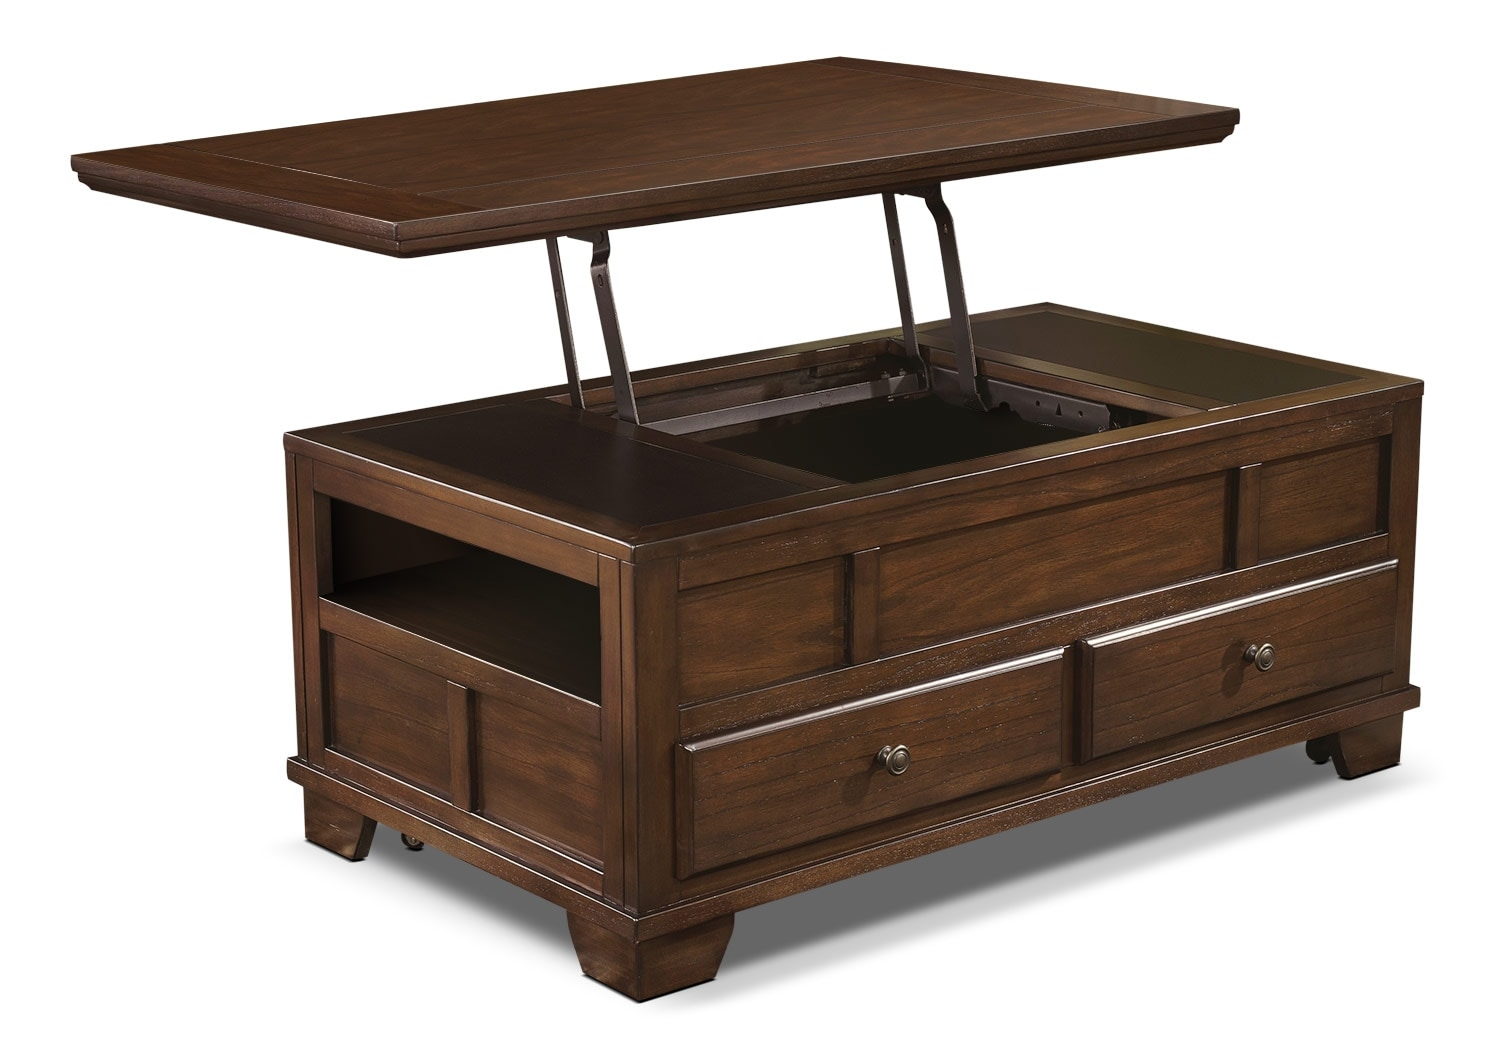 Gately Coffee Table With Lift Top The Brick